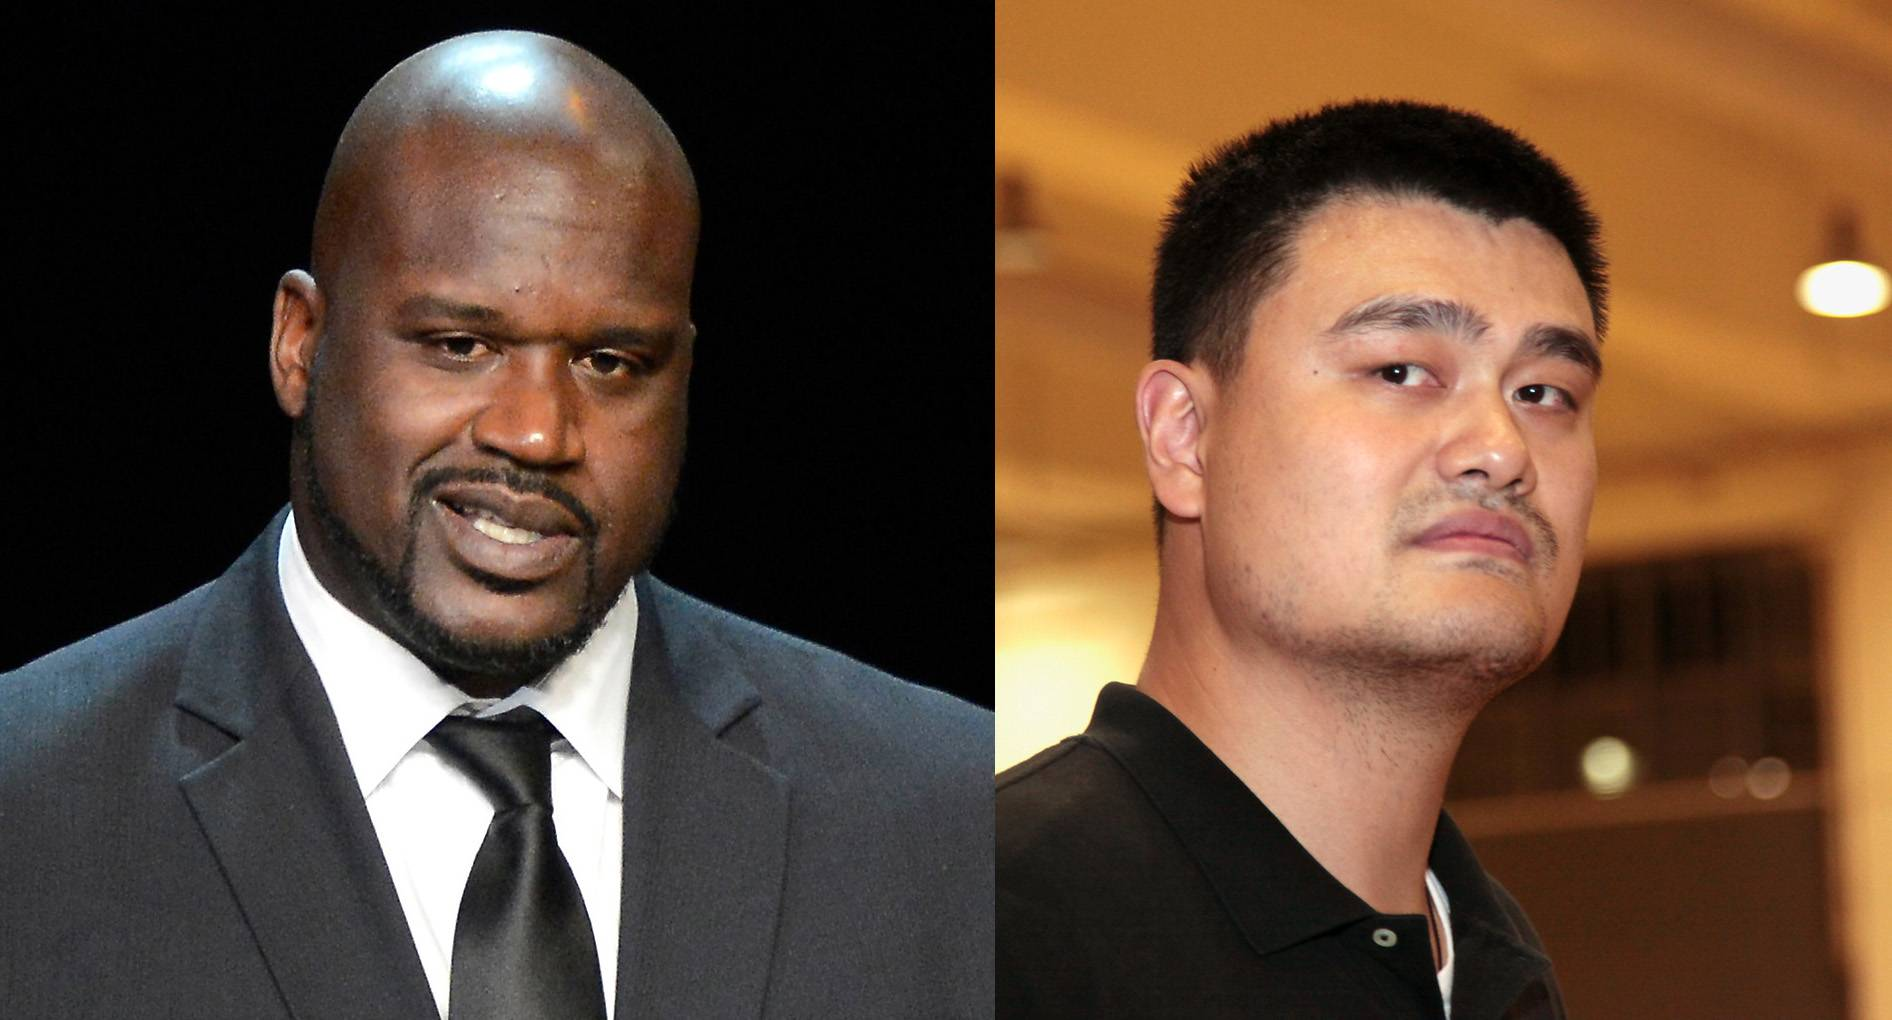 """Shaq Mocks Yao Ming's Chinese - Back in 2003, then-Los Angeles Lakers'center Shaquille O'Nealdrew the ire of Asian Americans when he taunted Yao Ming, saying, """"Tell Yao Ming, 'Ching-chong-yang-wah-ah-soh.'"""" Shaq later apologized. Come on, Shaq!(Photos from left: Kevork Djansezian/Getty Images, Kevin Lee/Getty Images)"""